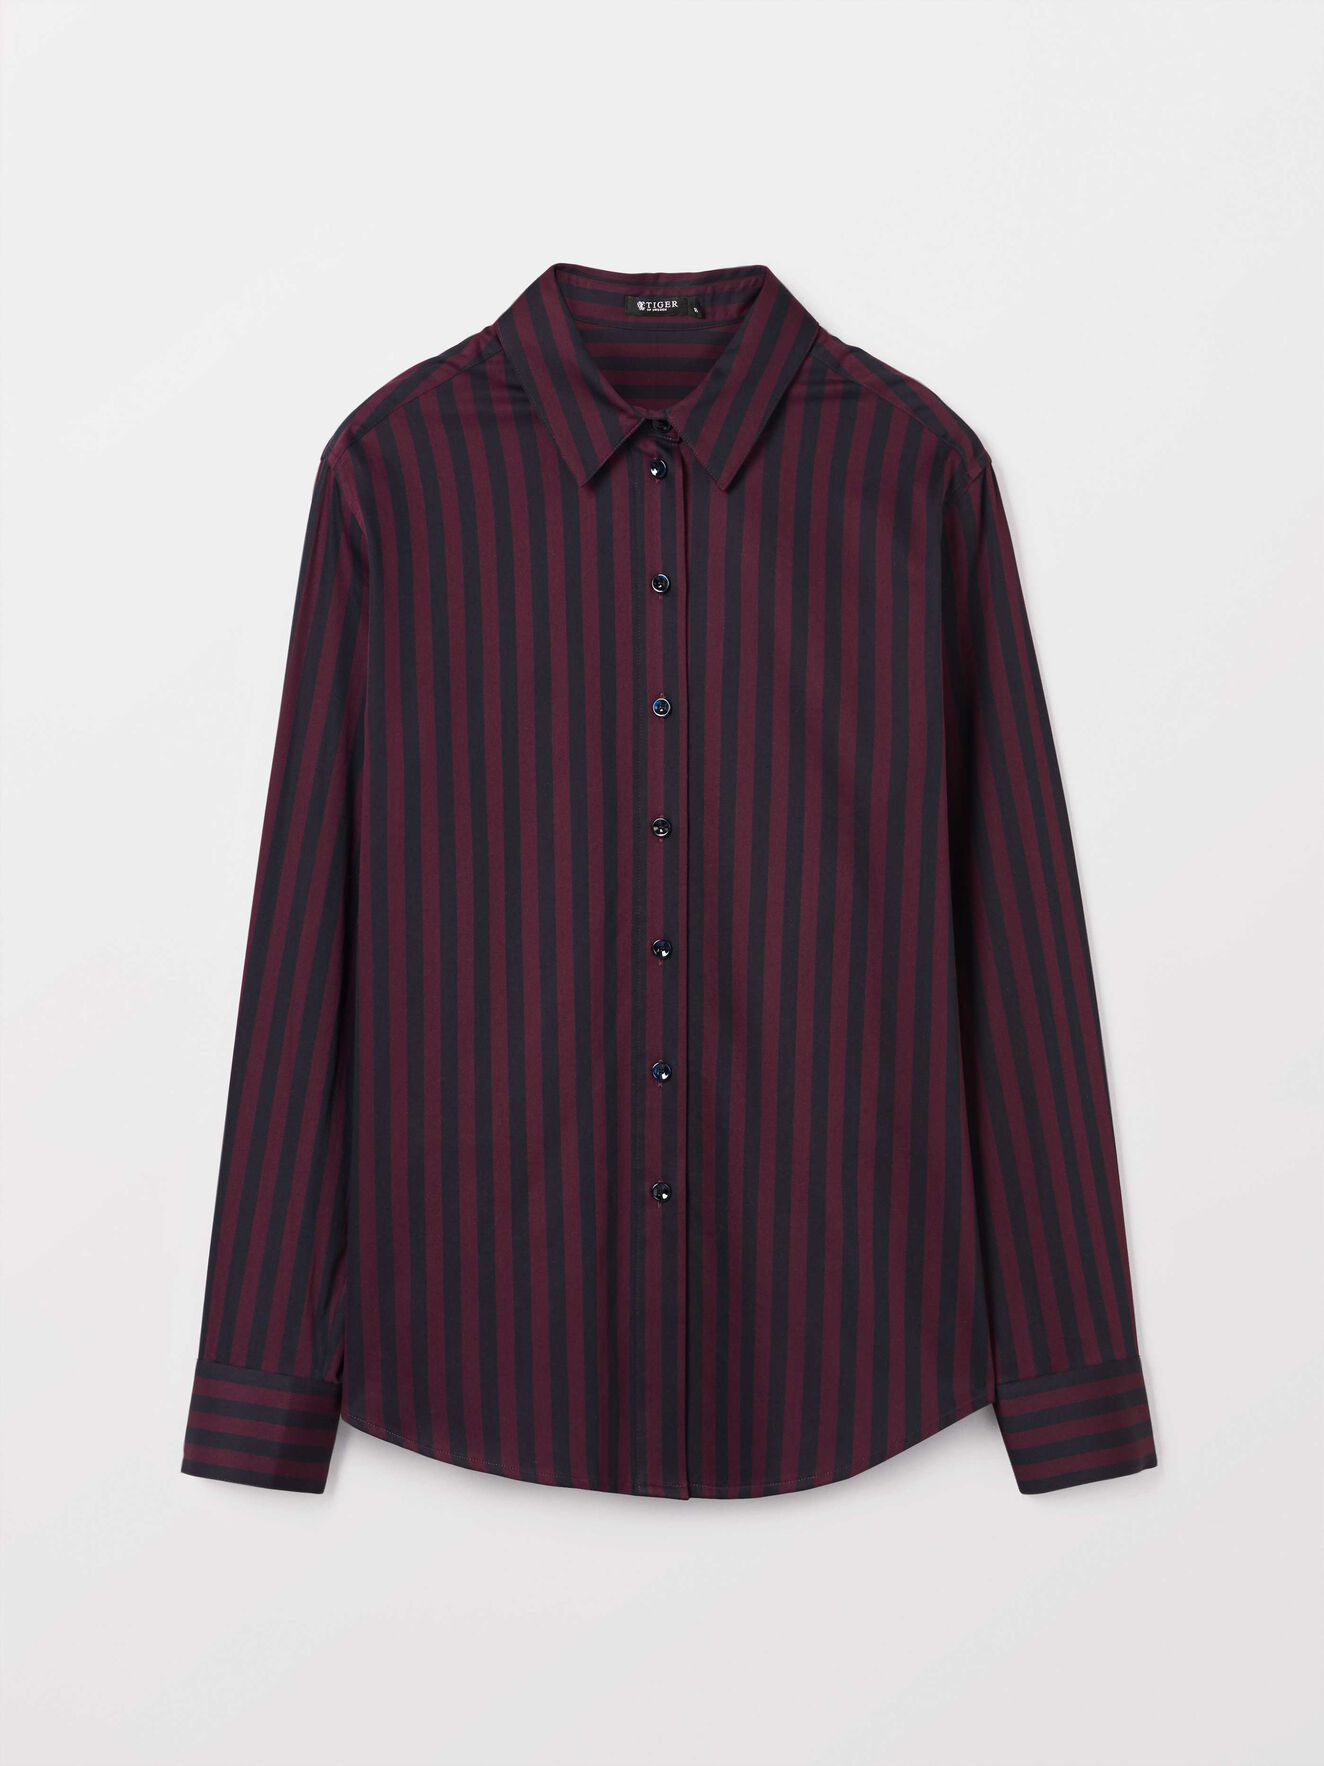 Ris S Shirt in Juicy Plum from Tiger of Sweden